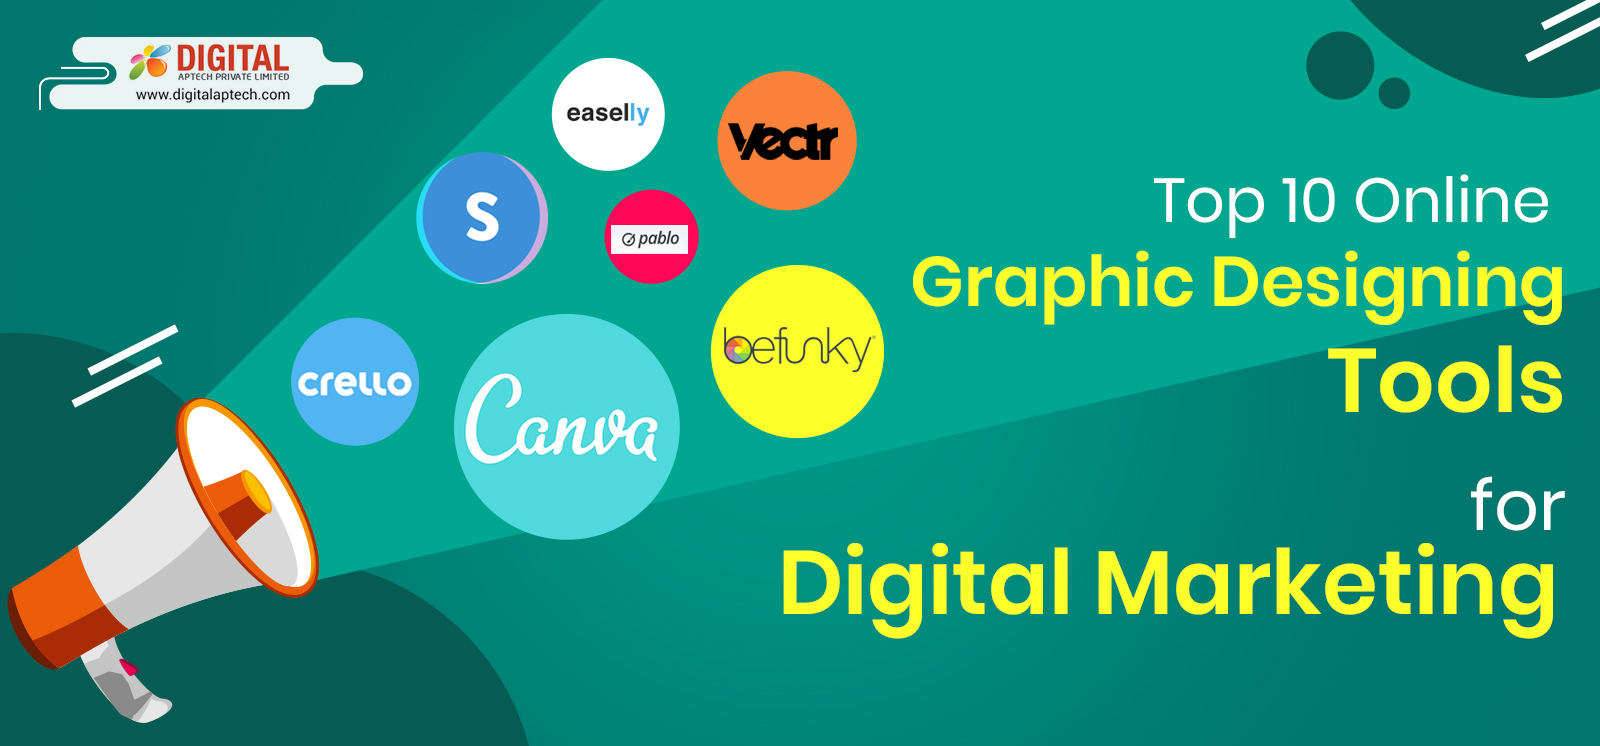 Top 10 Online Graphic Designing Tools for Digital Marketing